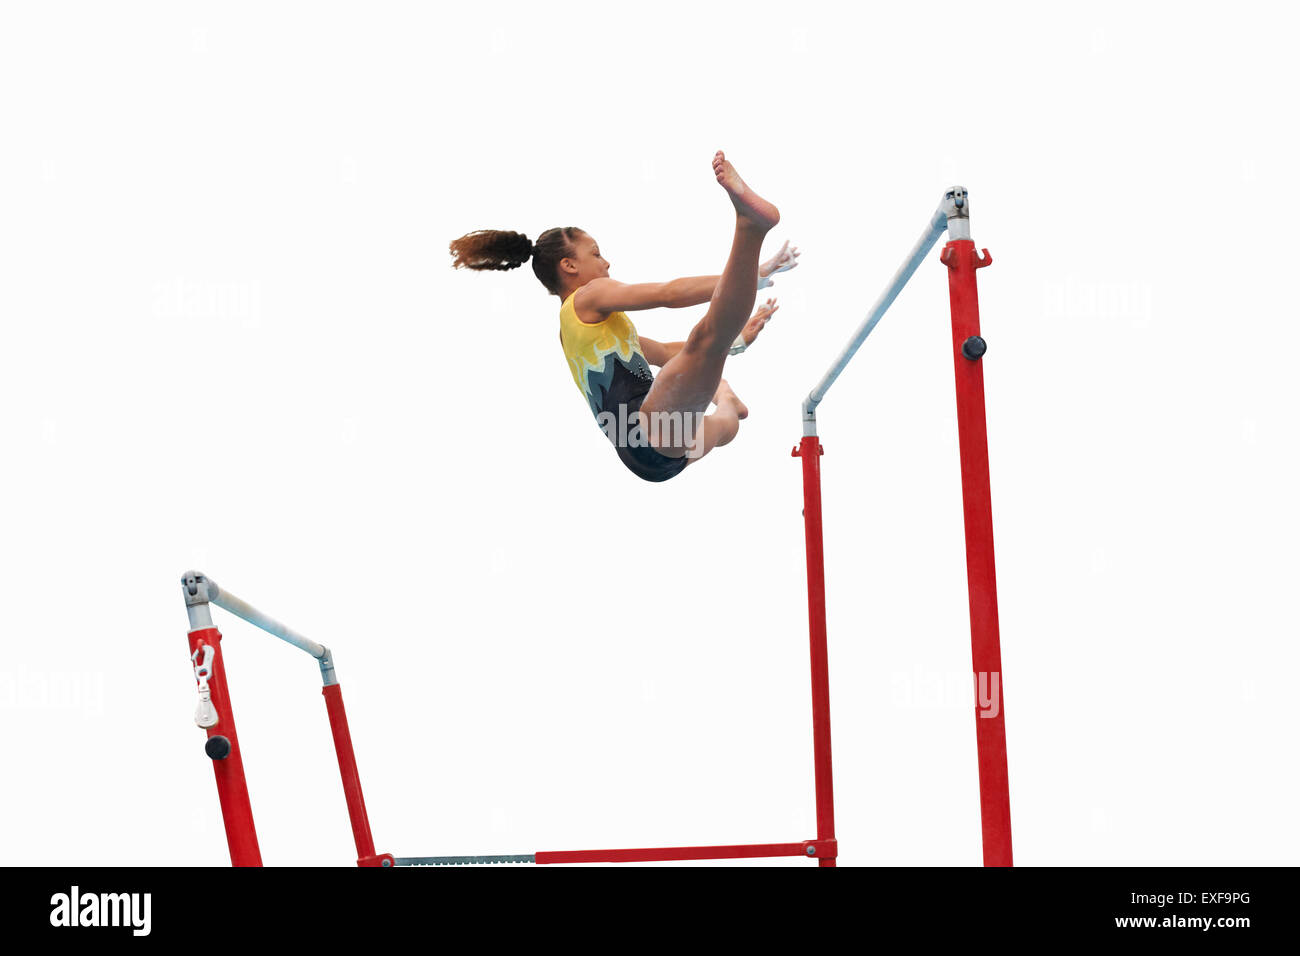 Young gymnast performing on uneven bars - Stock Image